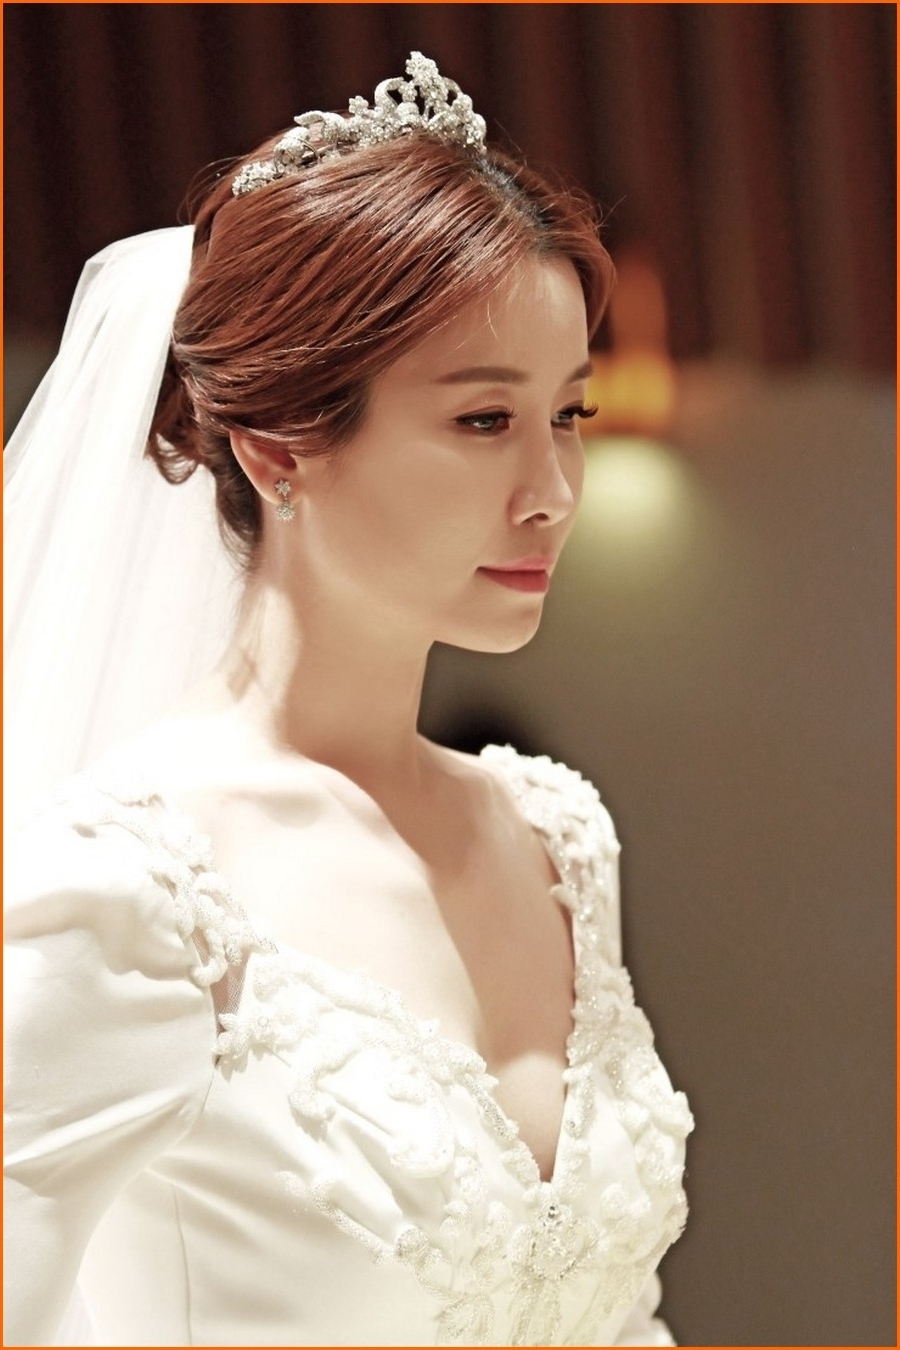 Newest Korean Wedding Hairstyles For Korean Wedding Hairstyle Inspiration 2018 (4) – Hairstyles, Easy (View 9 of 15)